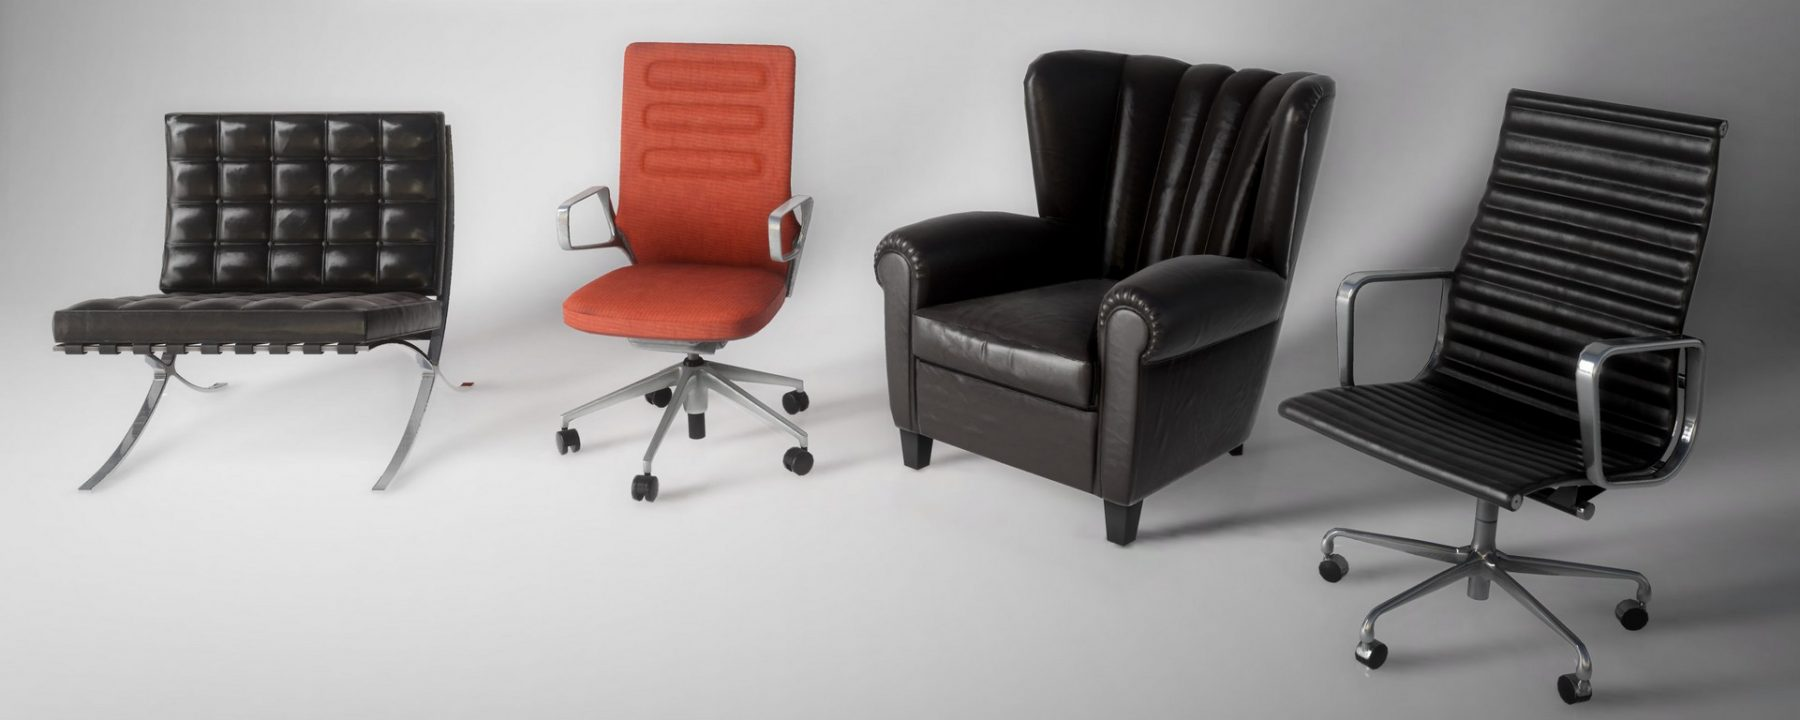 cropped-chairs-3d-models-eames-barcelona.jpg